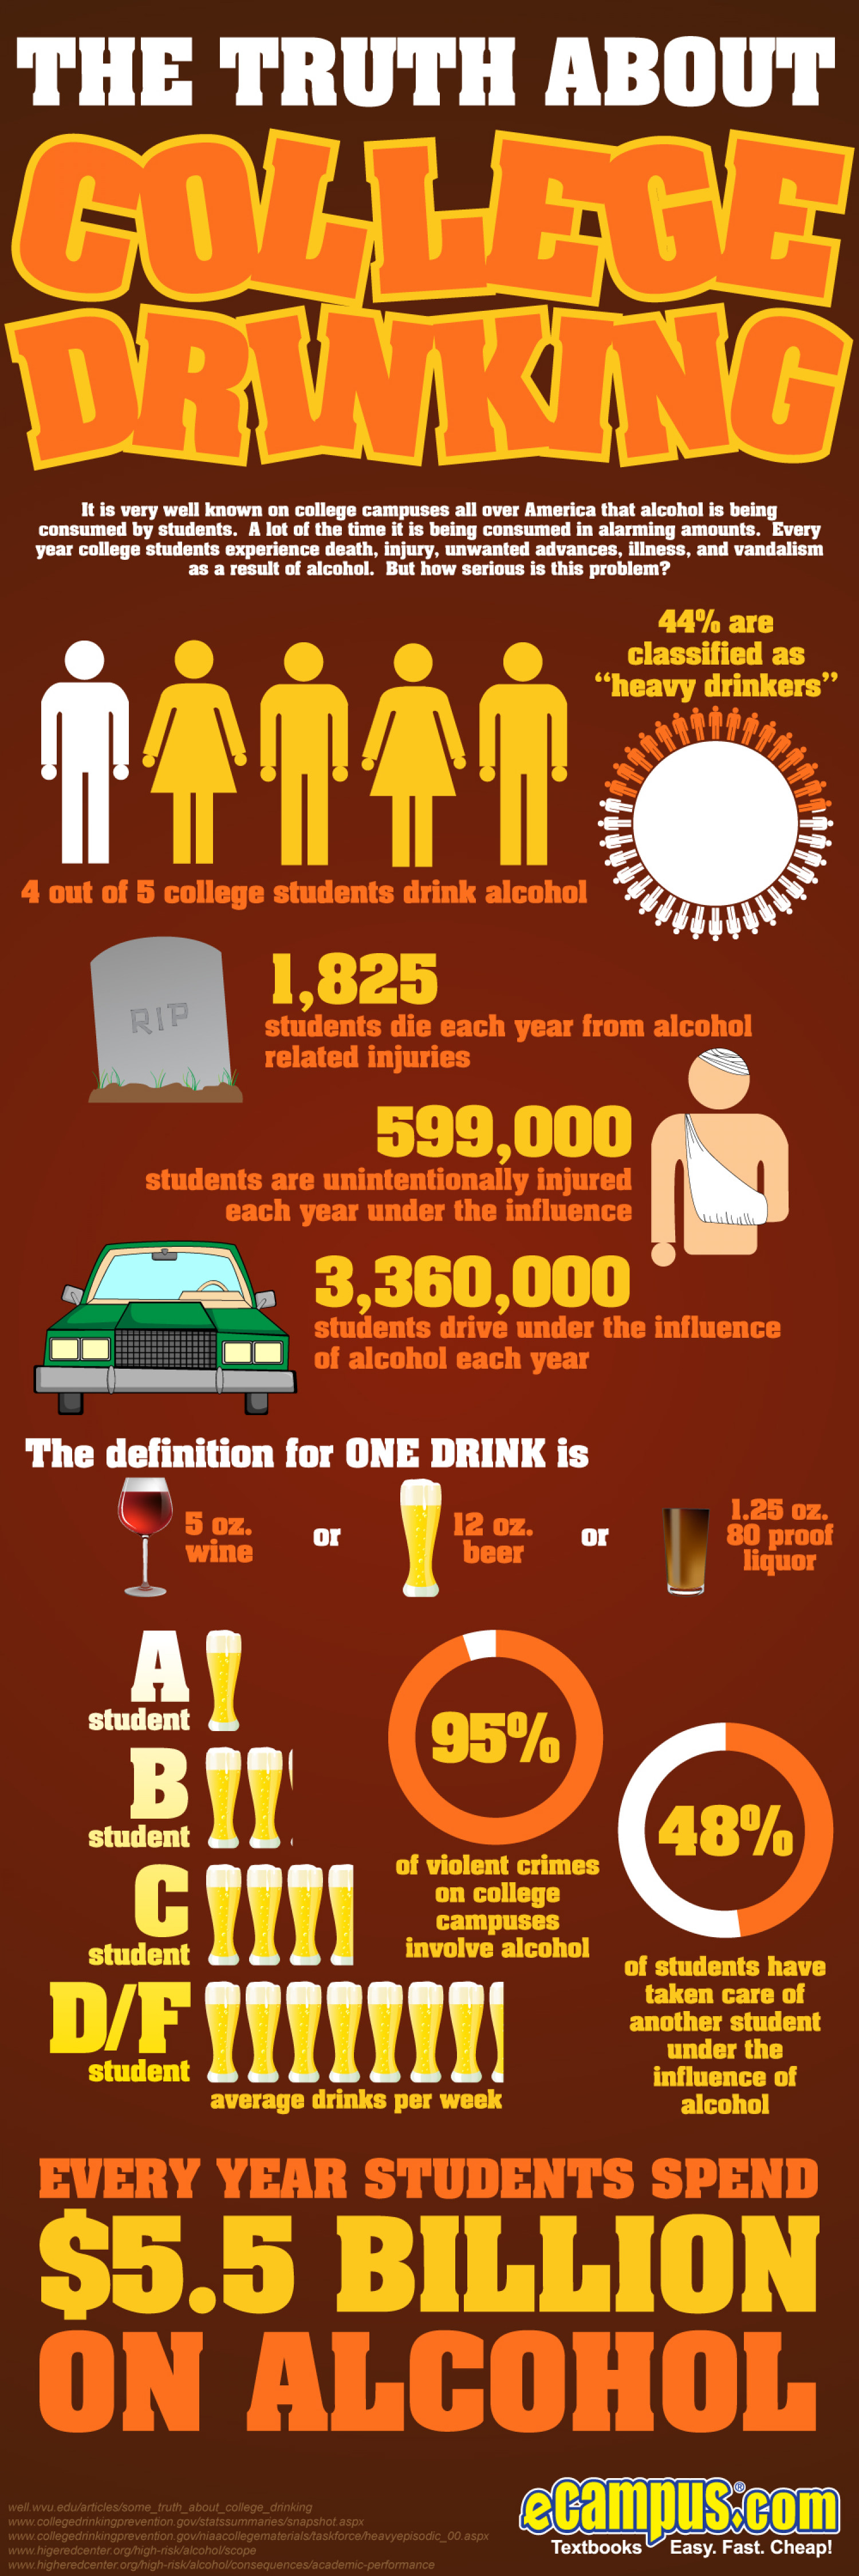 The Truth About College Drinking Infographic